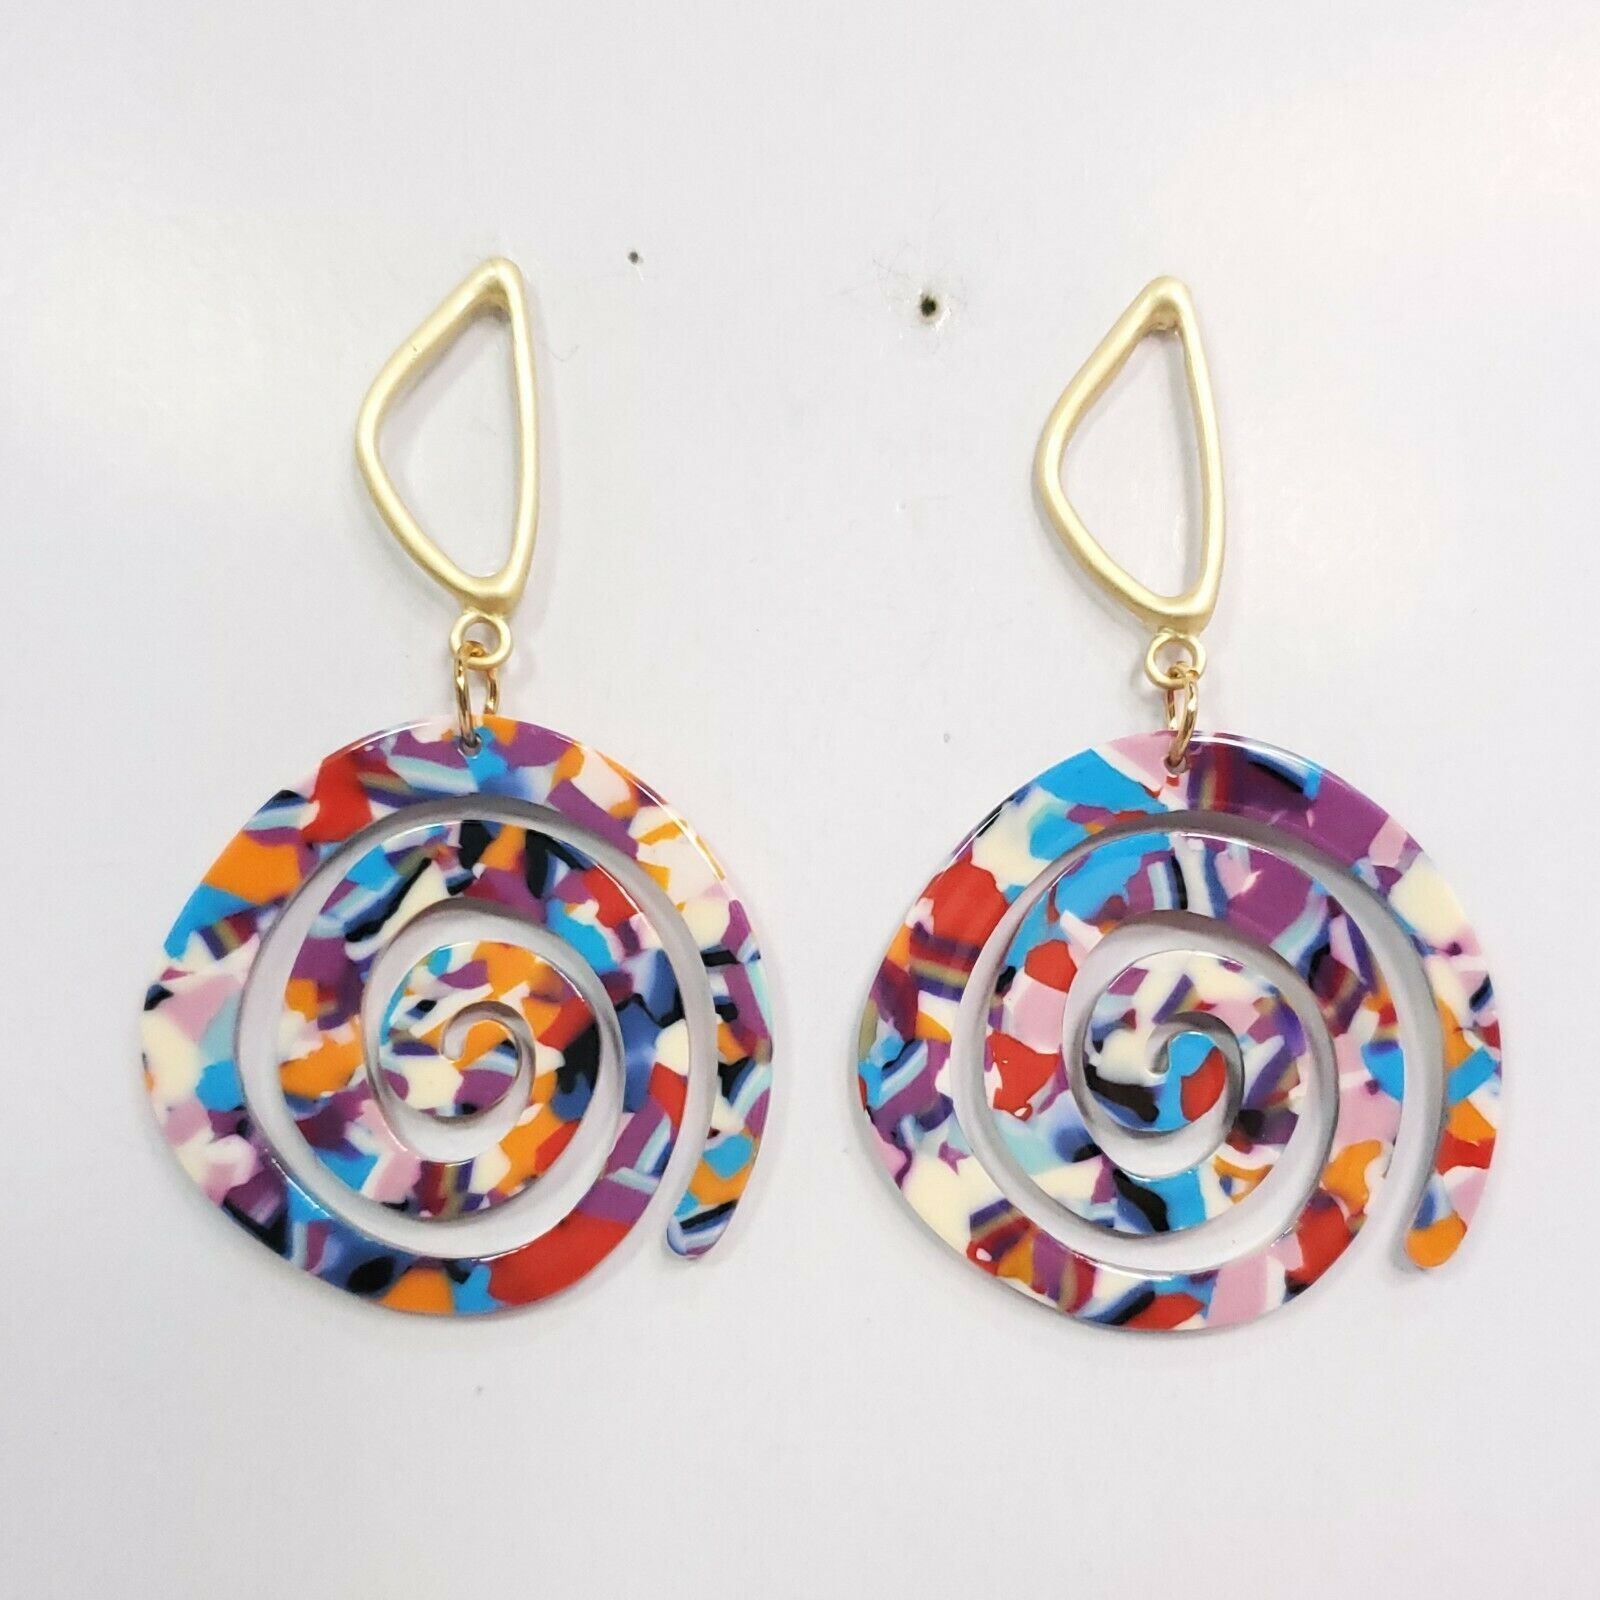 Primary image for E0270 Multi Color Acrylic Circle Spiral Design Drop Dangle Fashion Post Earrings